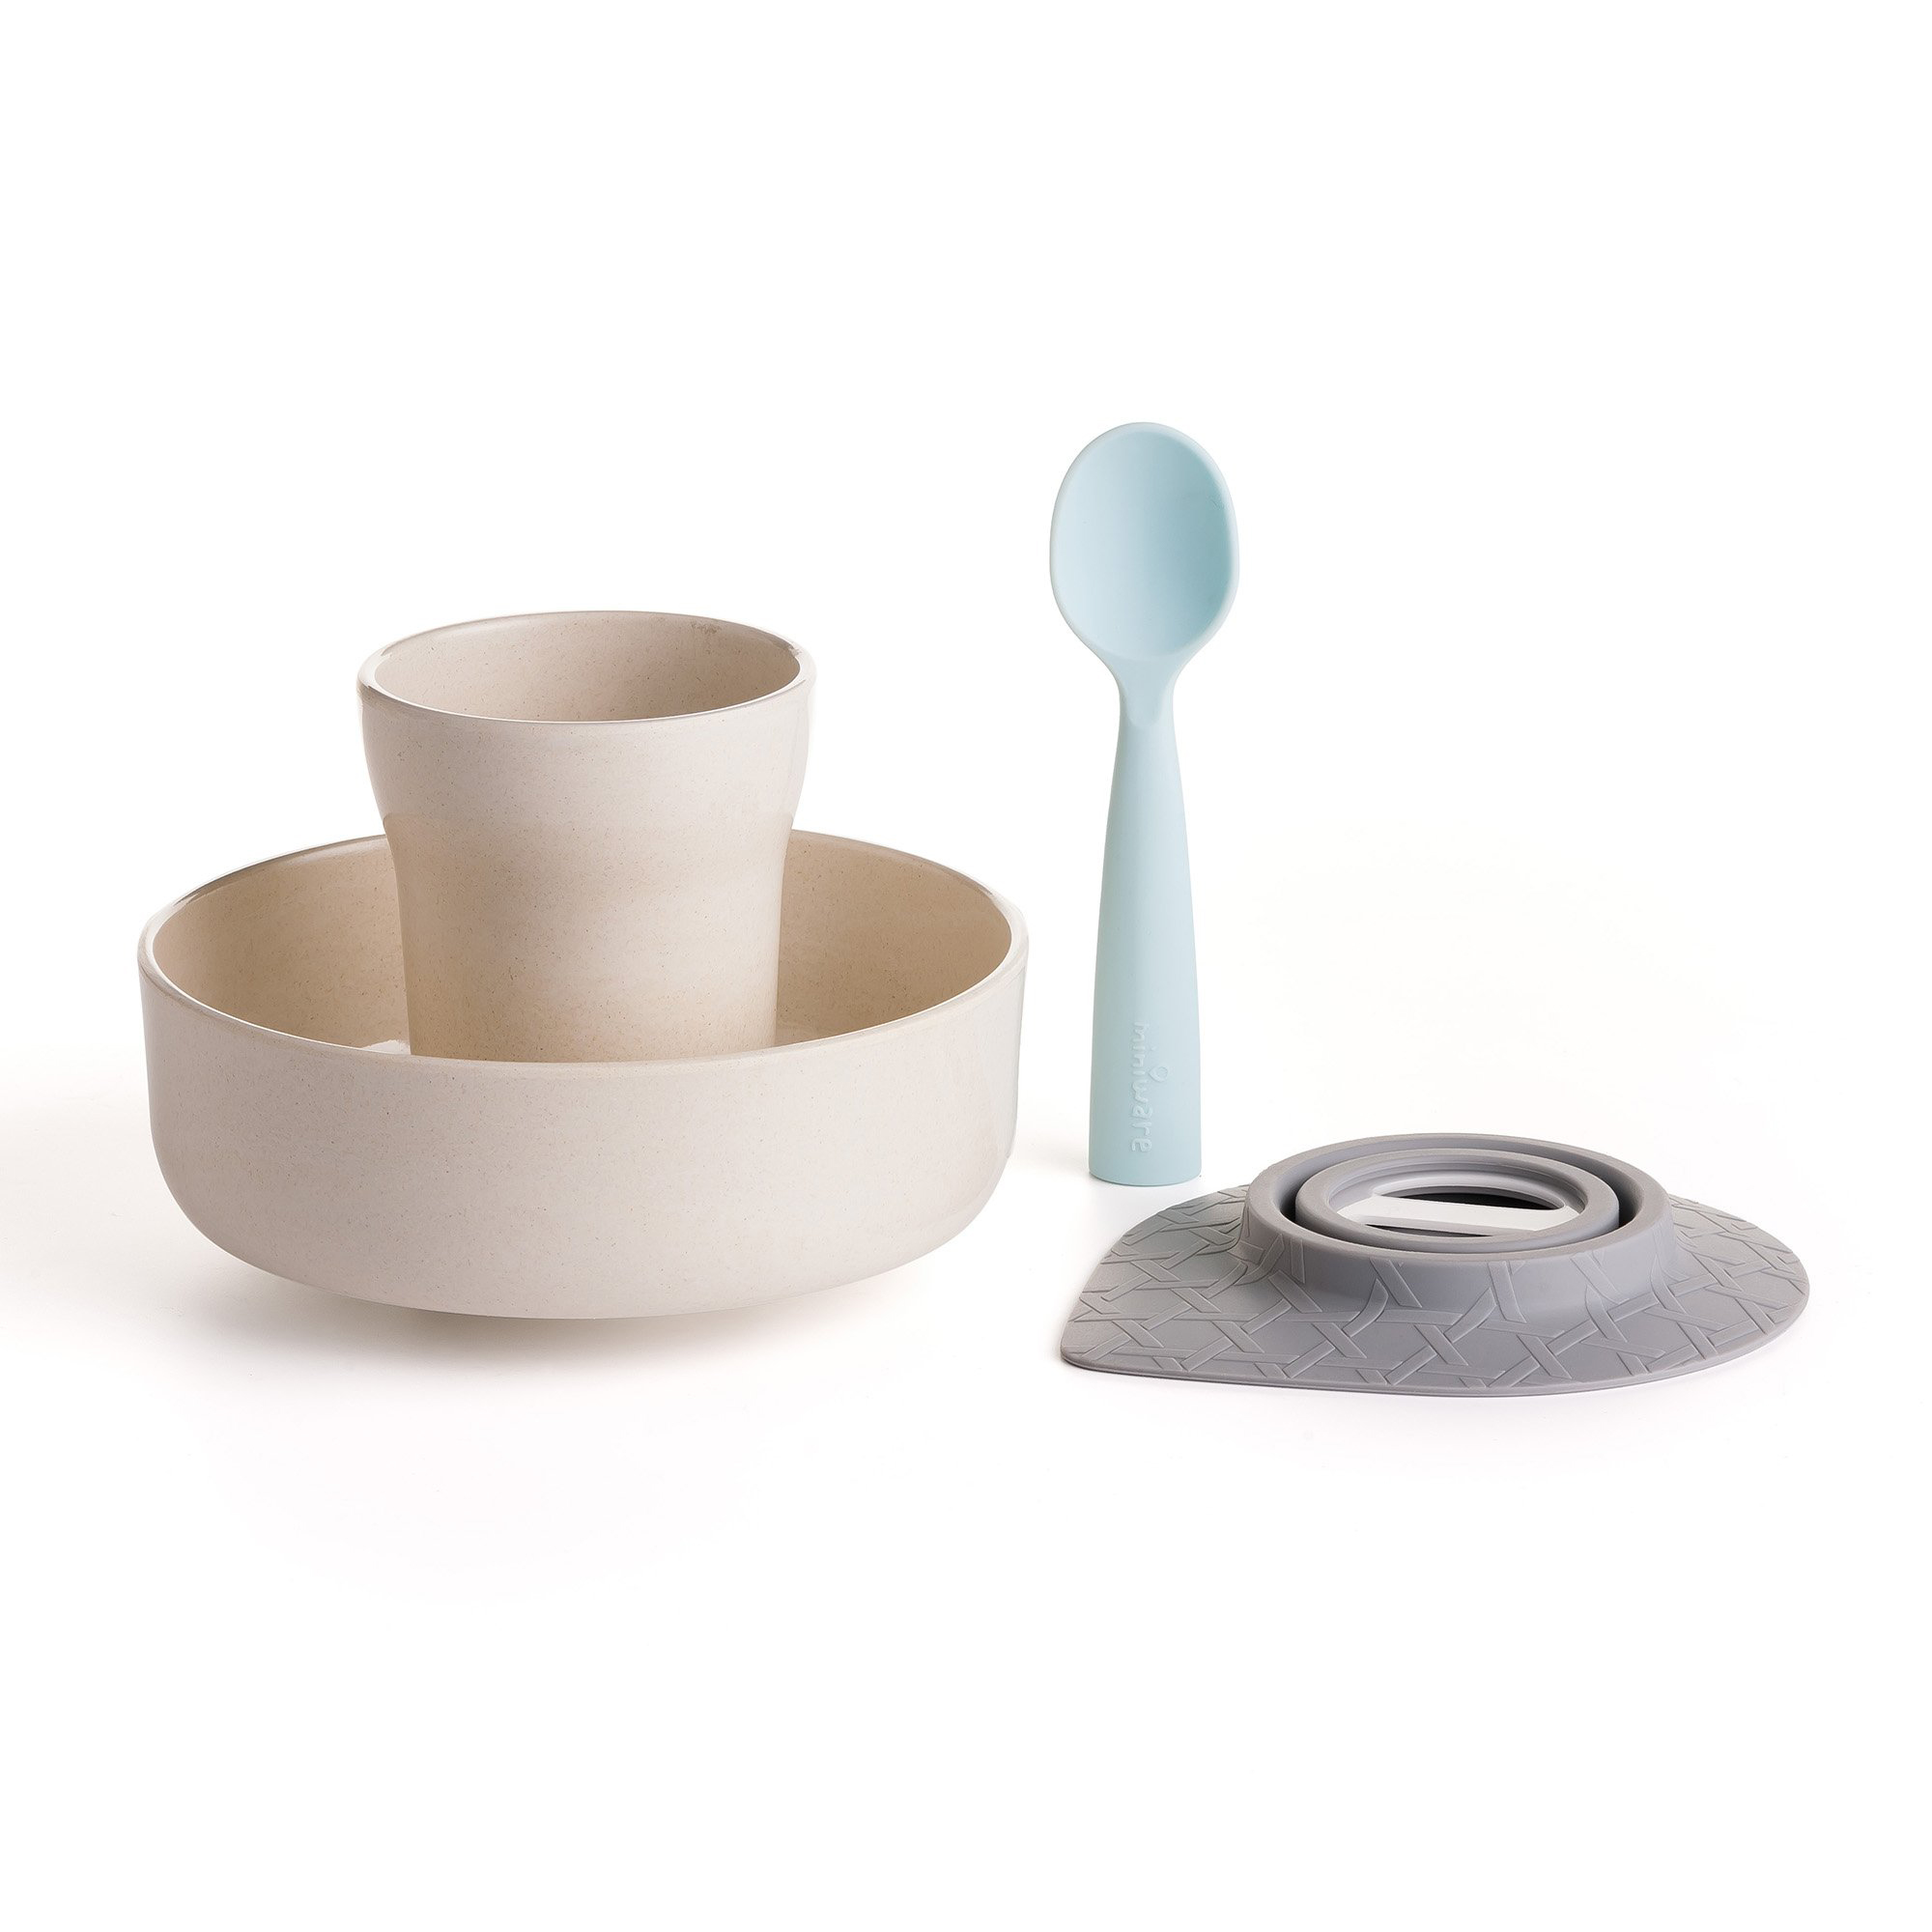 Baby Self-Conscious Baby Learning Dishes Spoon Fork Bowl Set Suction Cup Tableware Eating Feeding Feeding